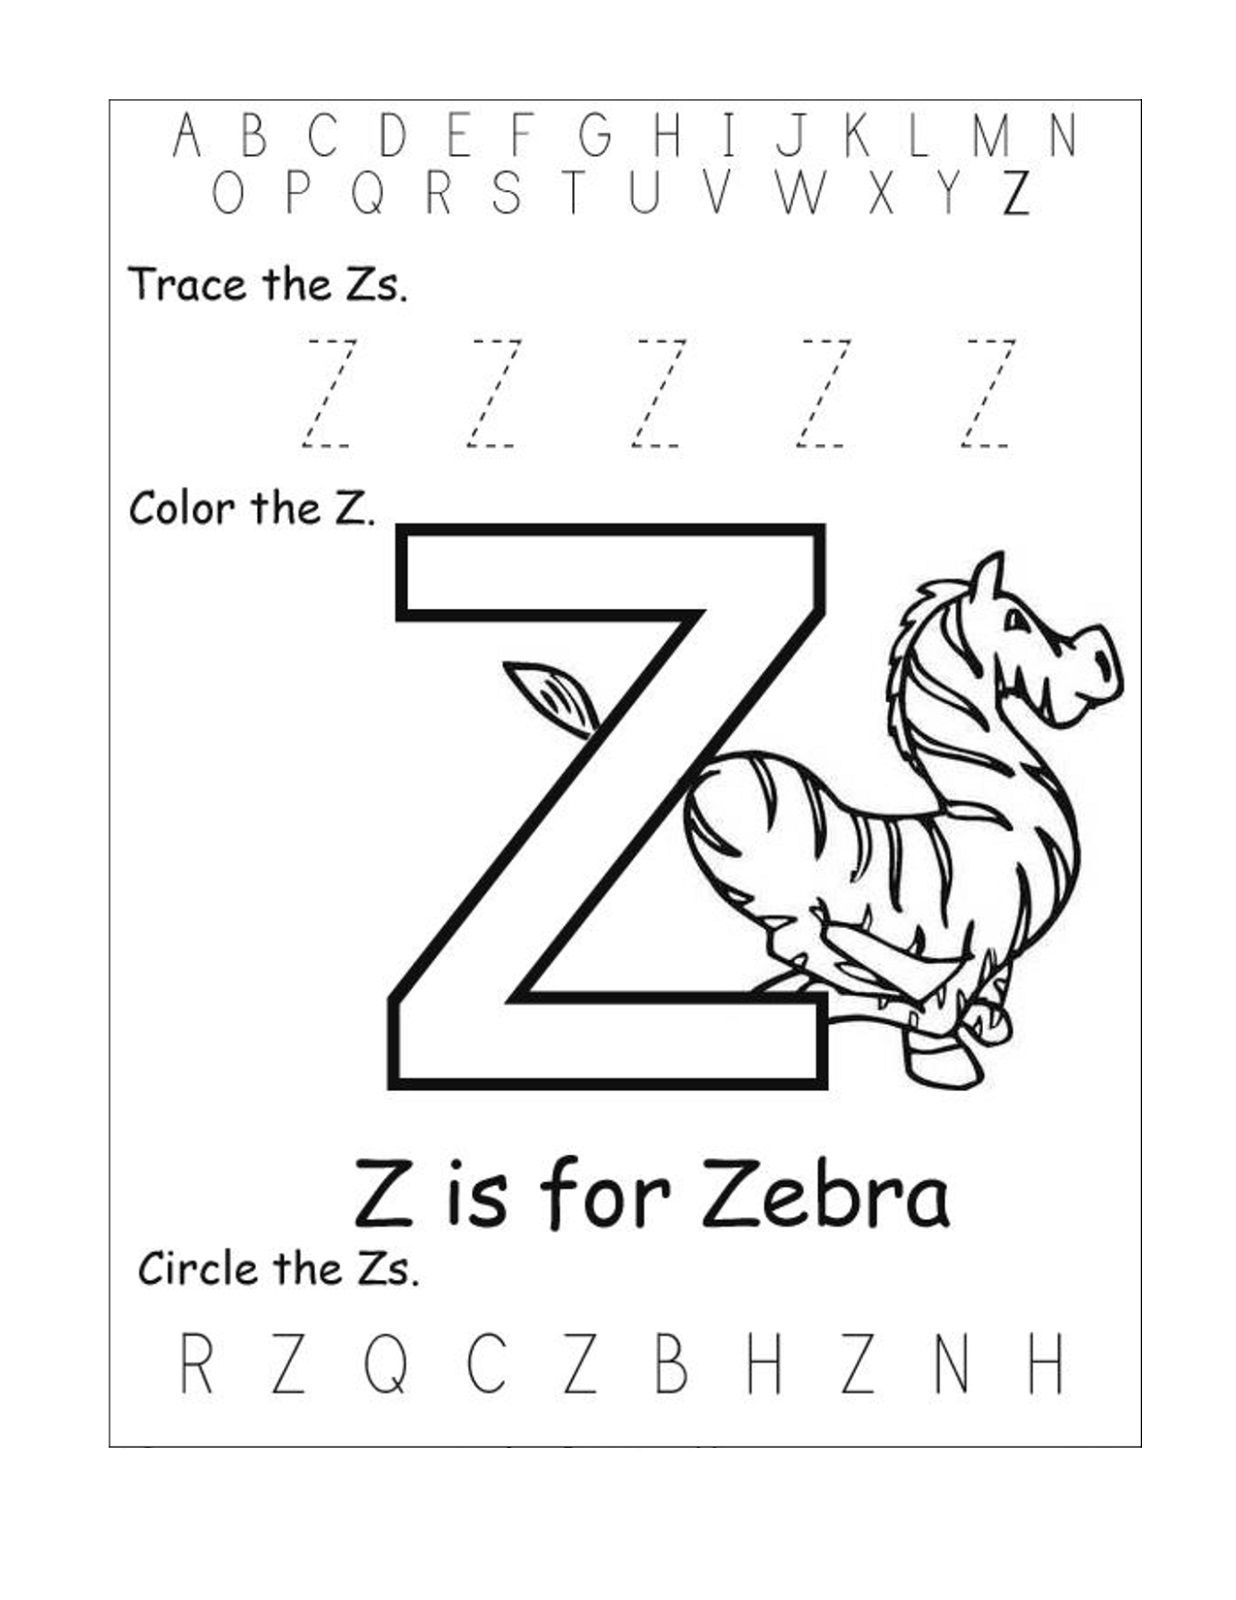 Letter Z Worksheets - Kids Learning Activity | Printable with regard to Letter Z Worksheets Free Printable